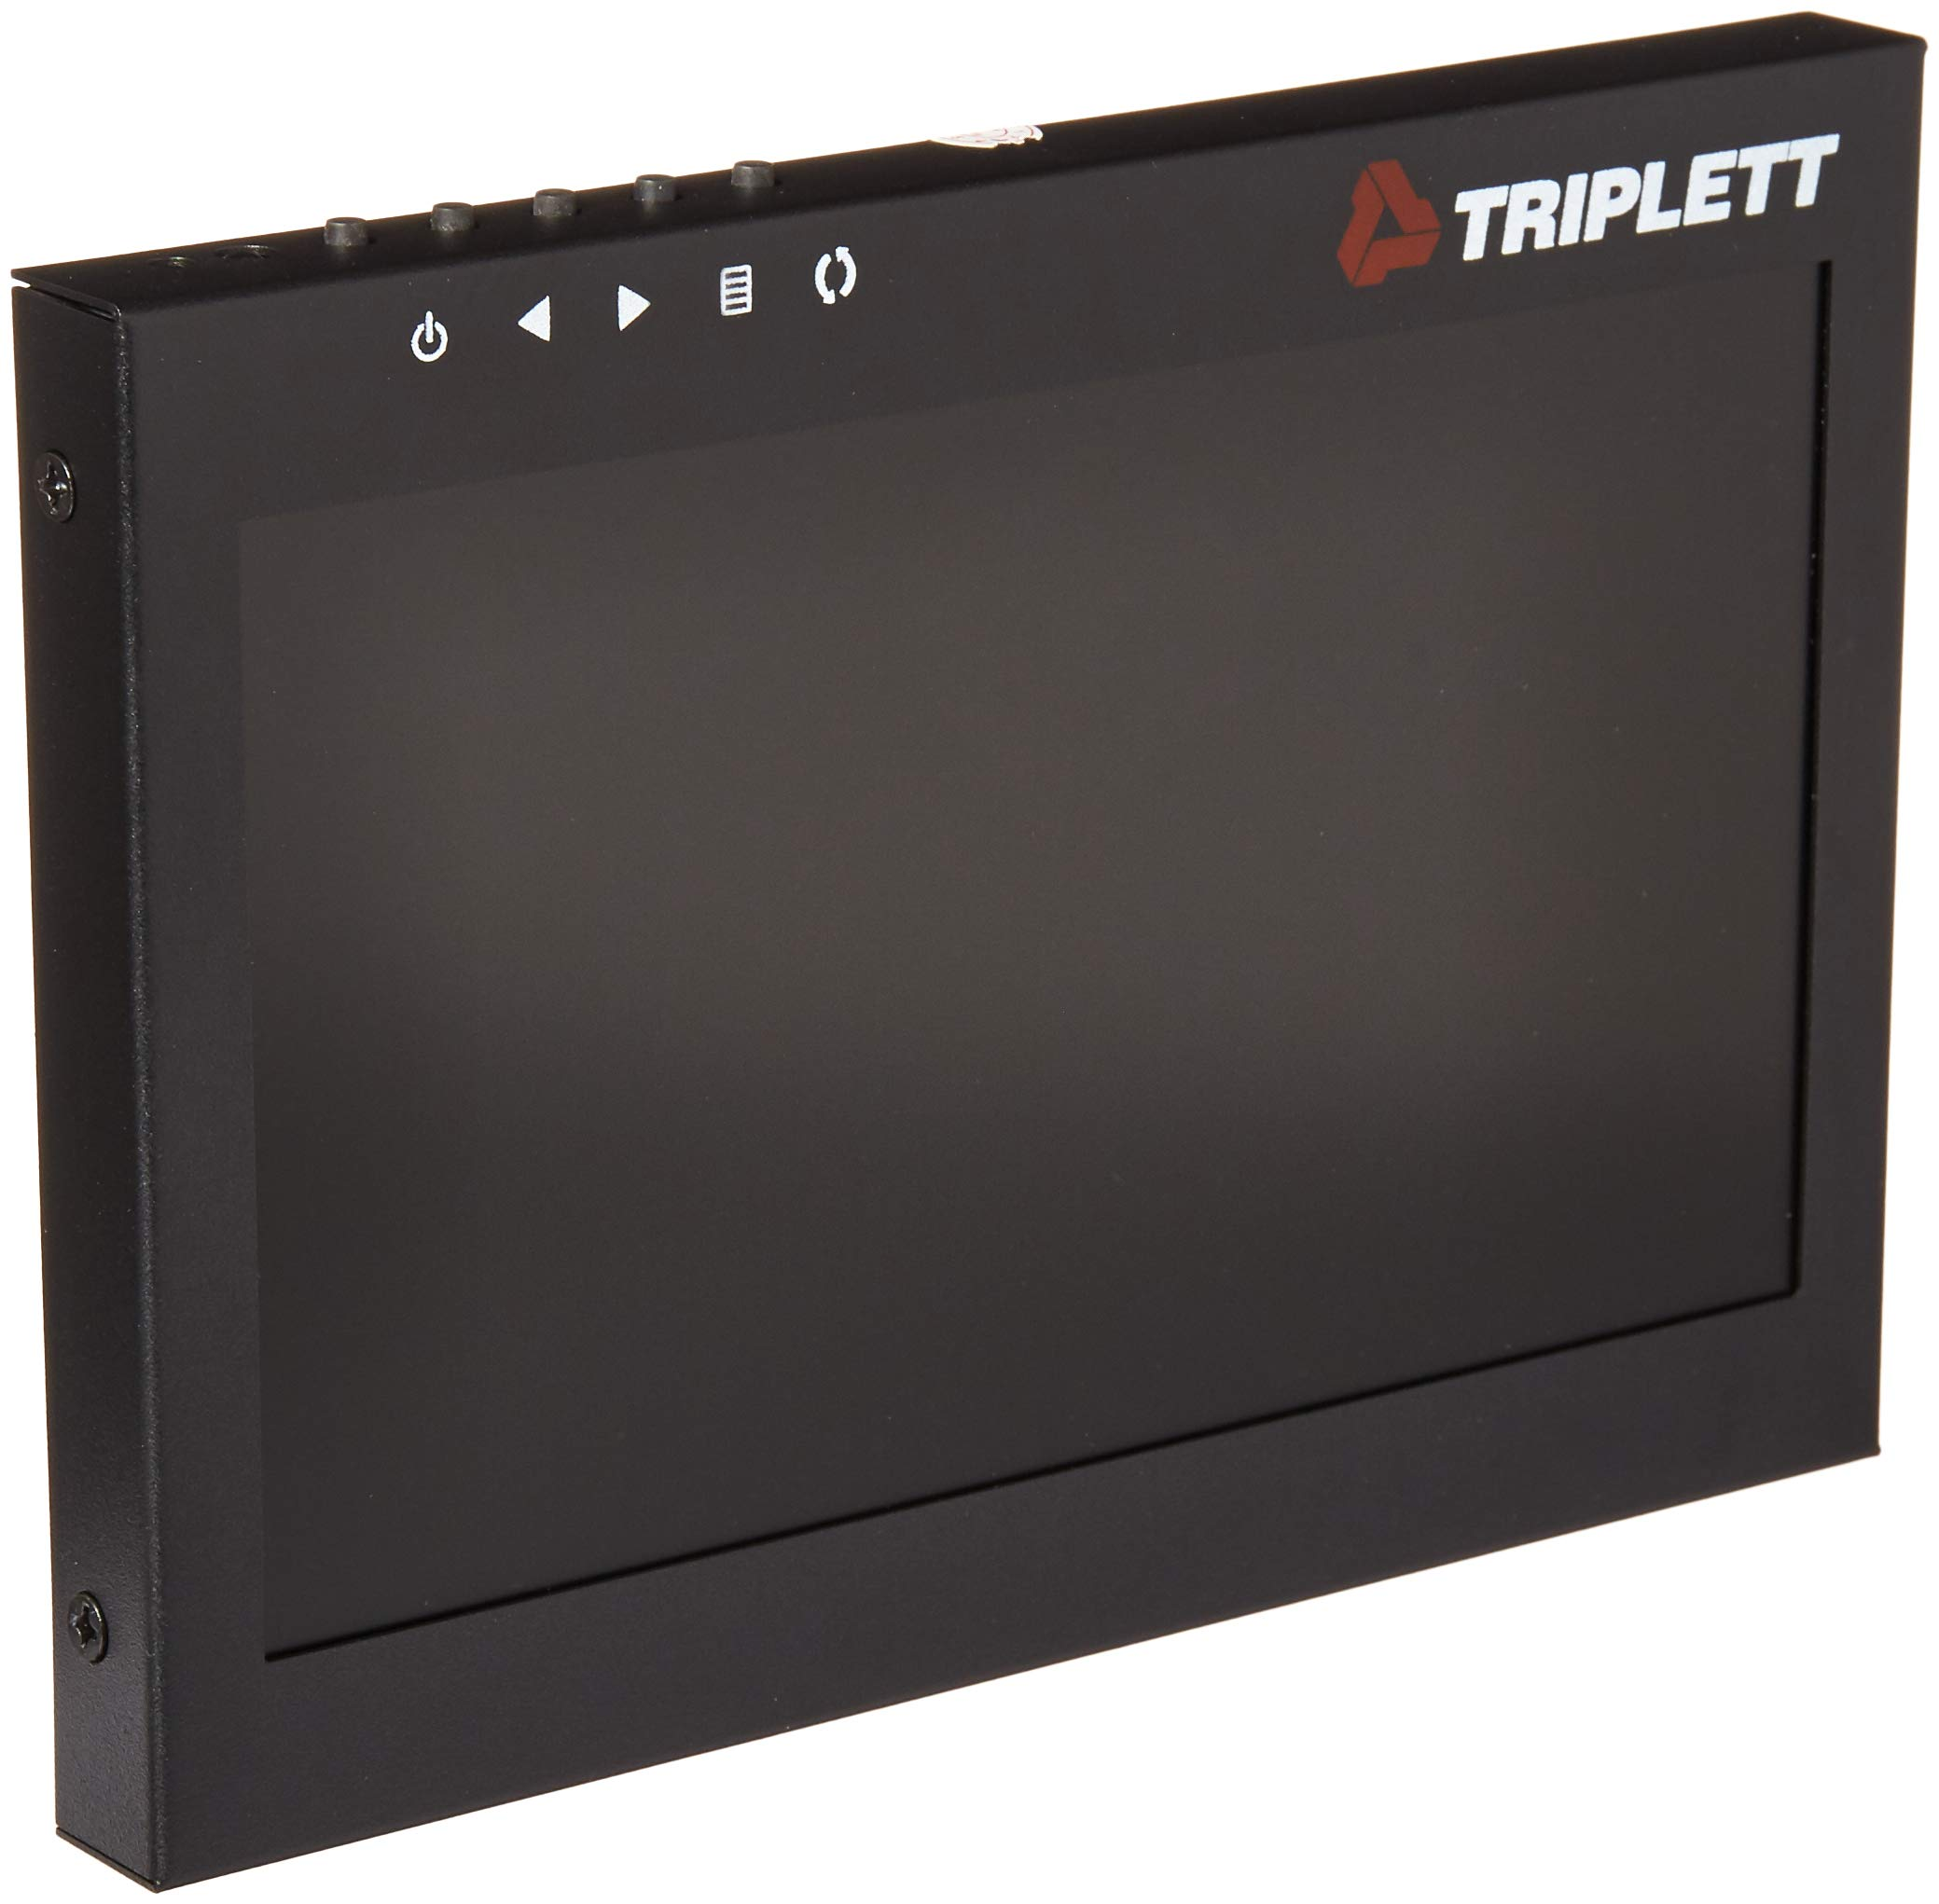 Triplett Multi-Purpose 7'' 1080P 4:3 HD LED Monitor with Carry Case - Use as Monitor for Computers, Laptops, Security Cameras, DVRs, DSLR Cameras & Raspberry PI Projects | AV/BNC/VGA/HDMI - (HDCM)